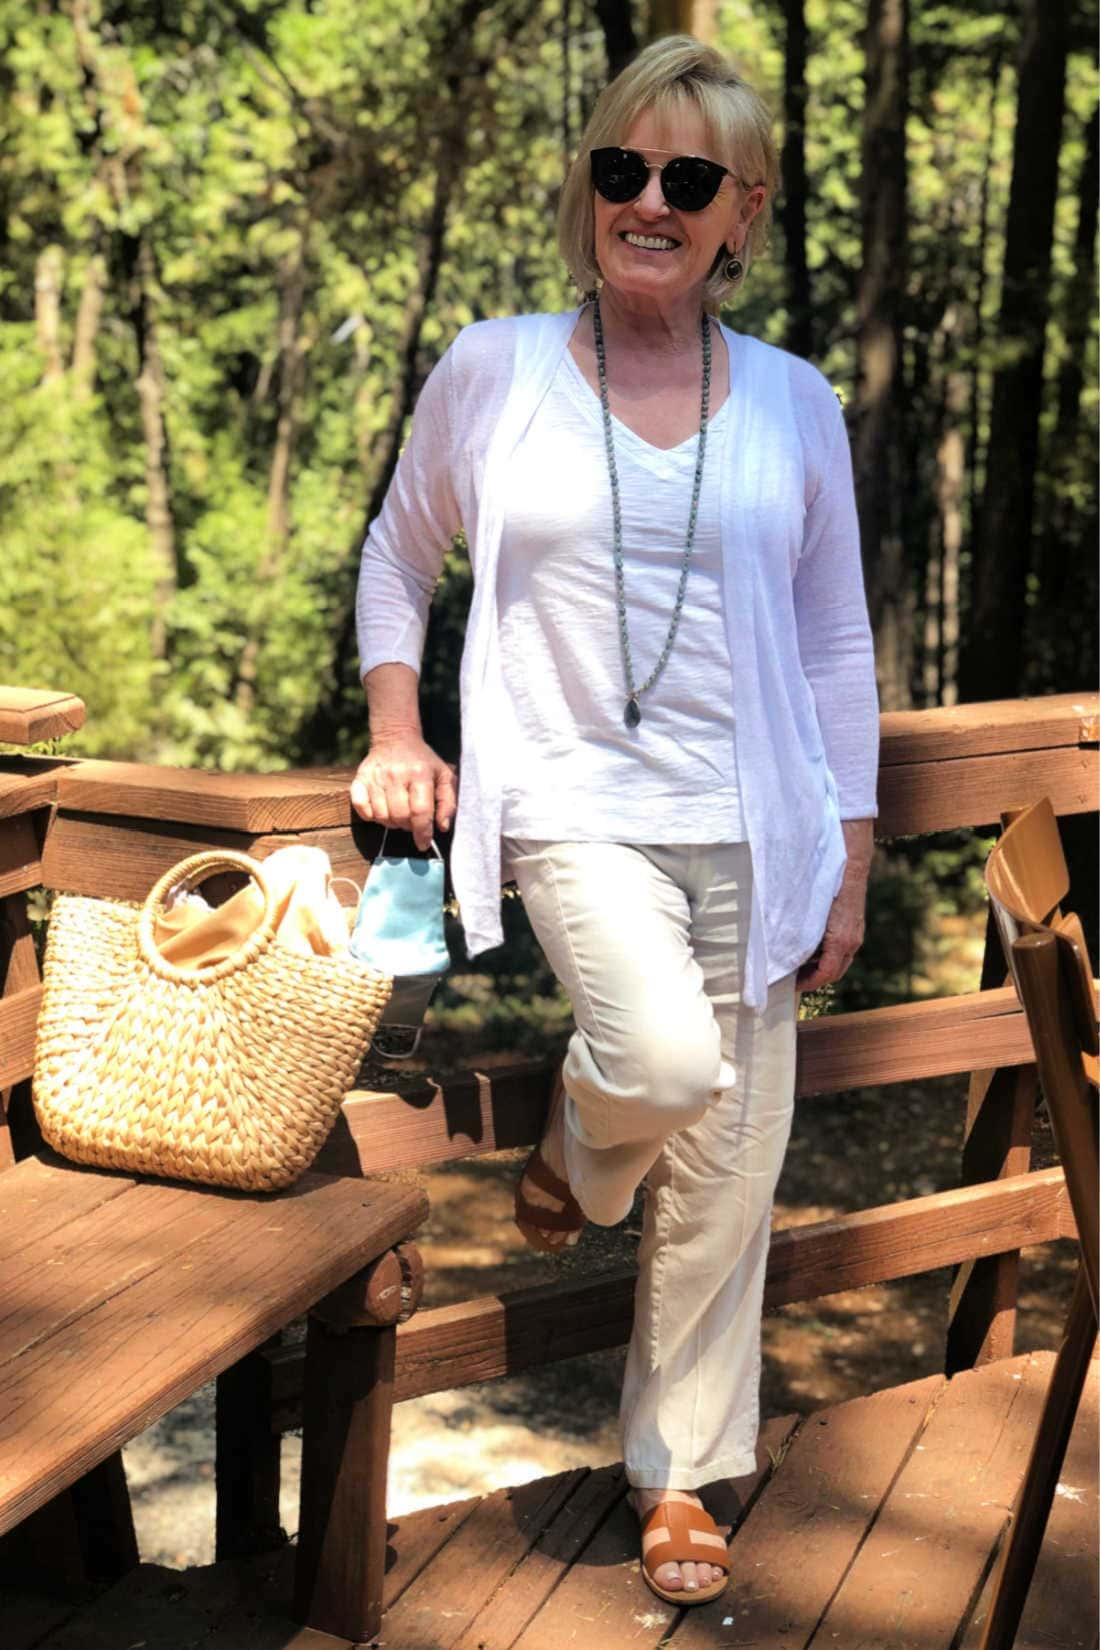 fashion blogger Jennifer Connolly wearing white and beige linin in a forest setting